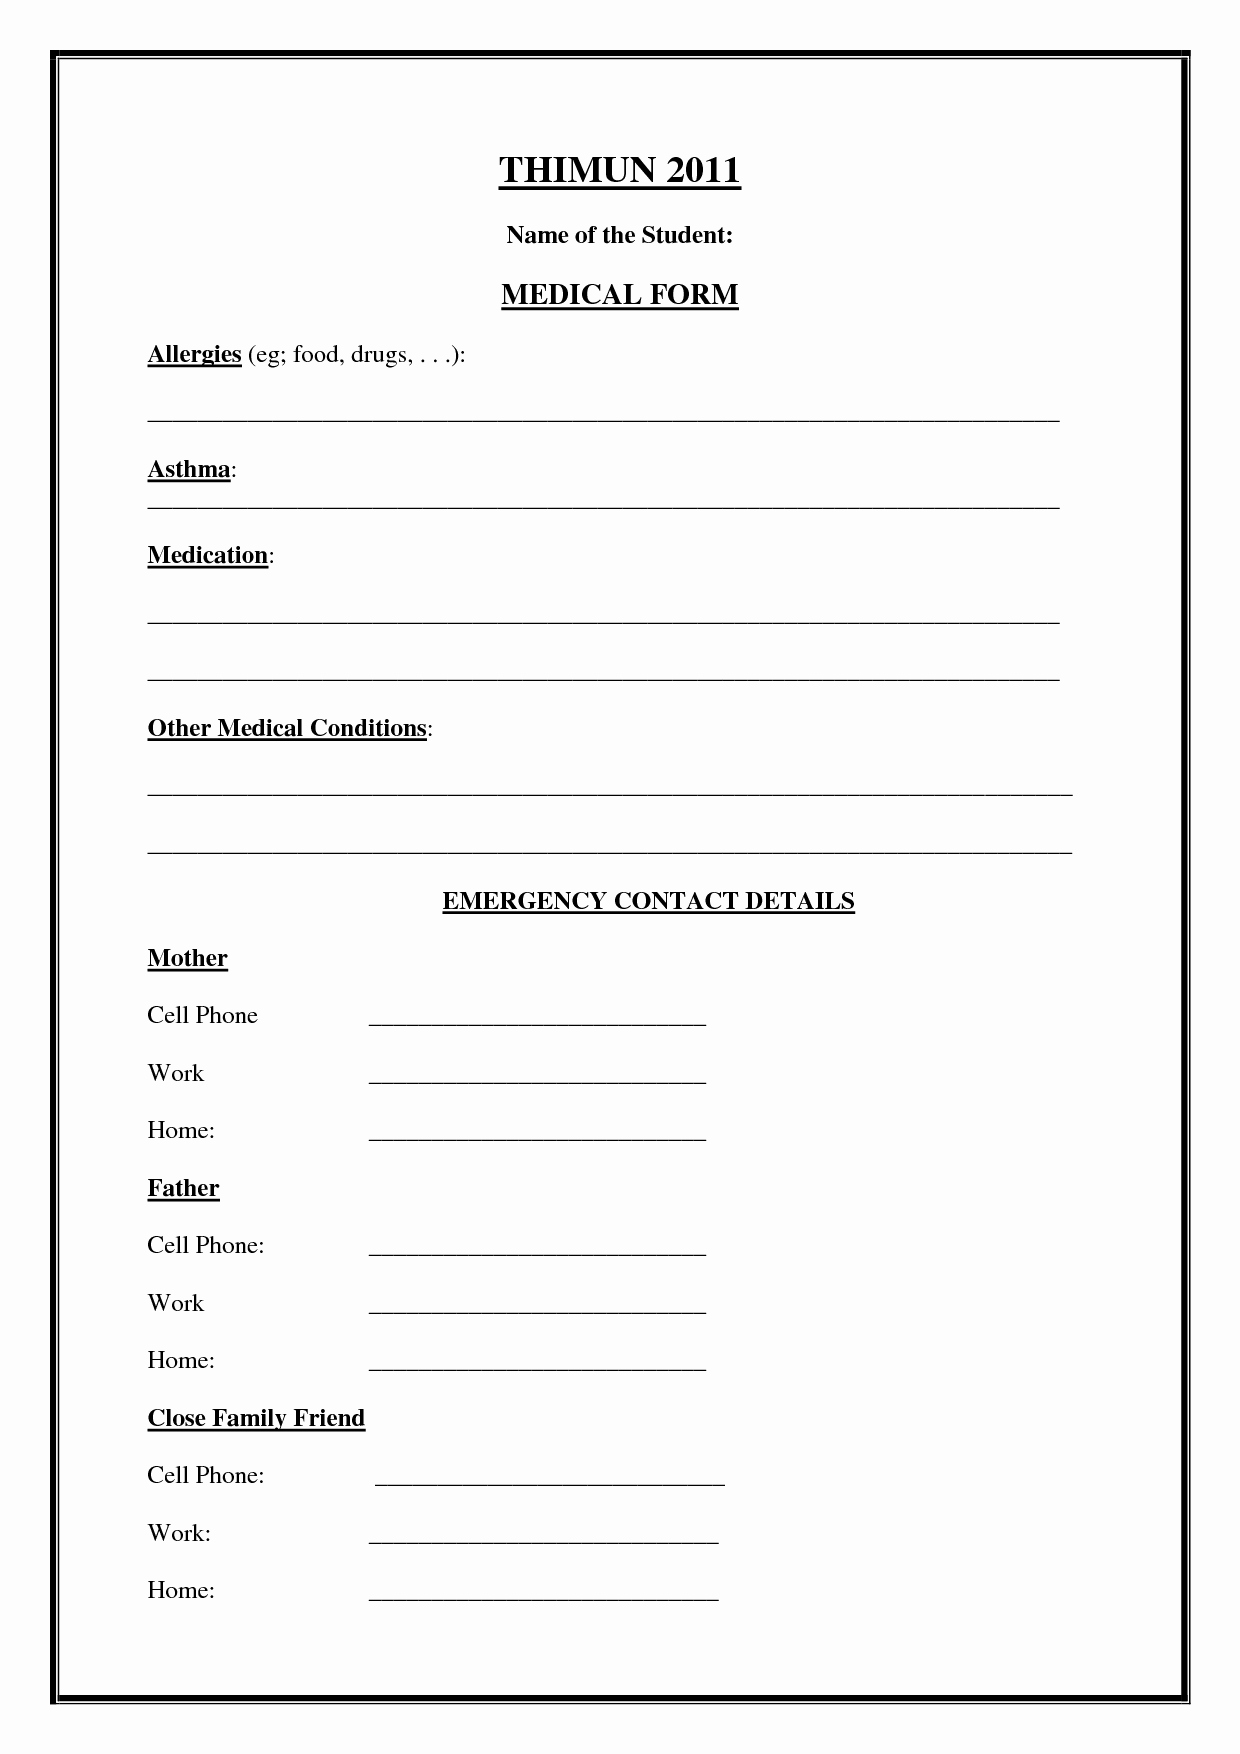 Emergency Contact form Template Free Fresh Emergency Medical form Template – Medical form Templates